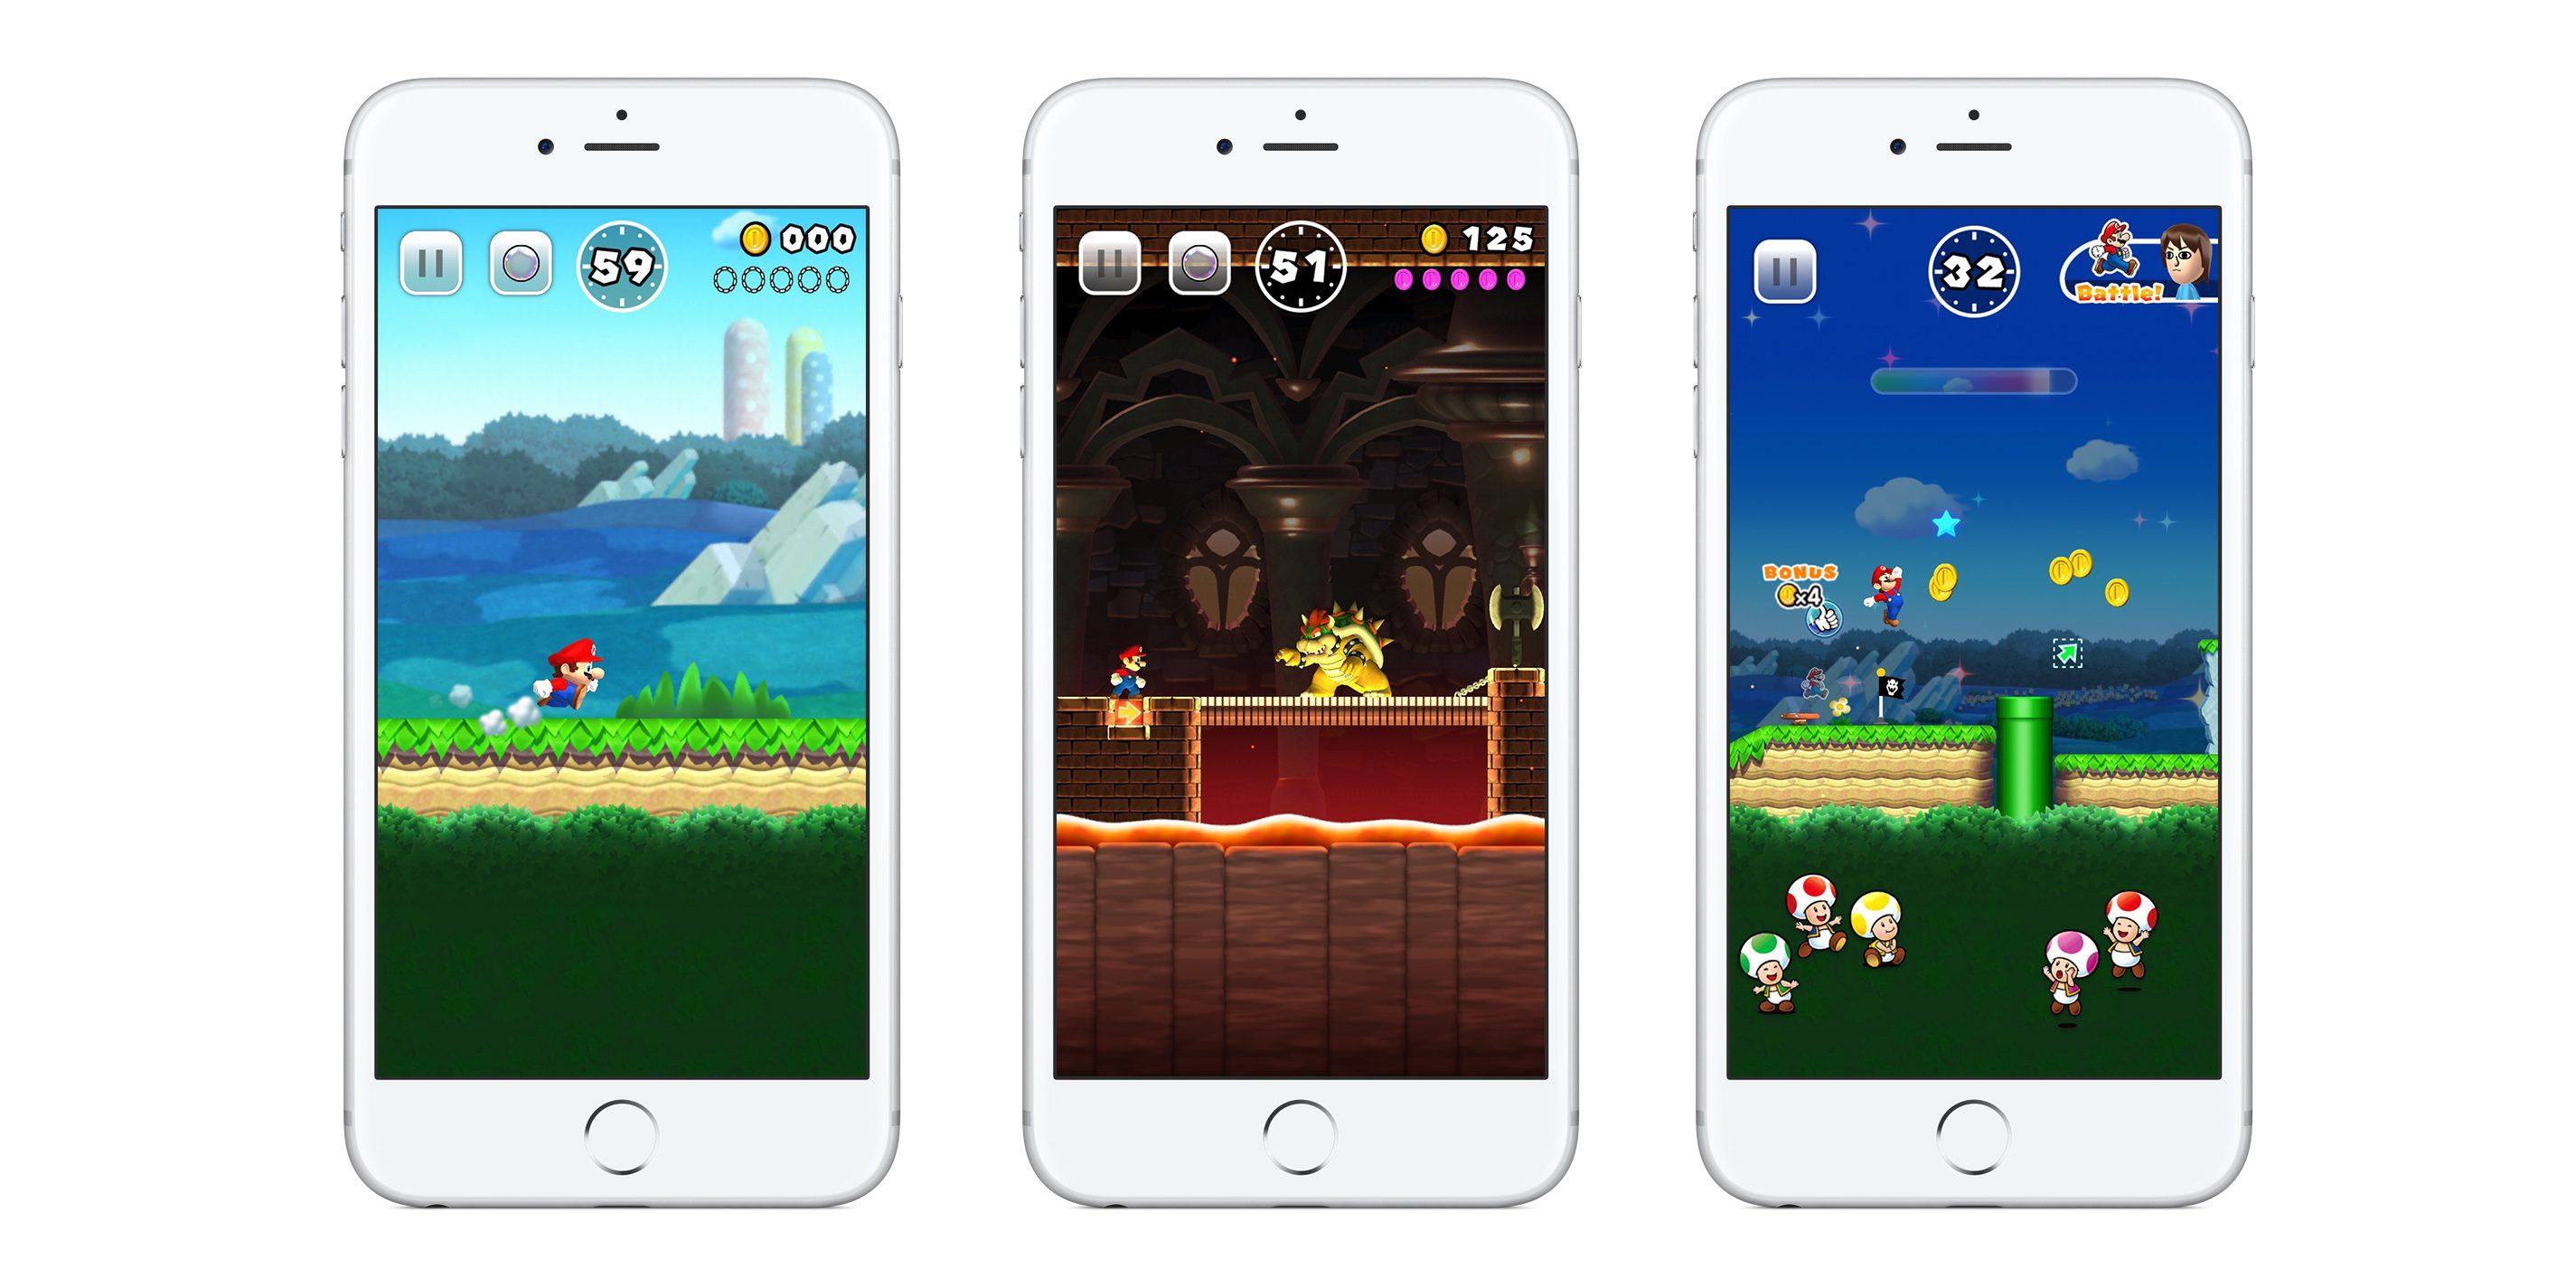 1481281153_super-mario-run-screenshots.jpg